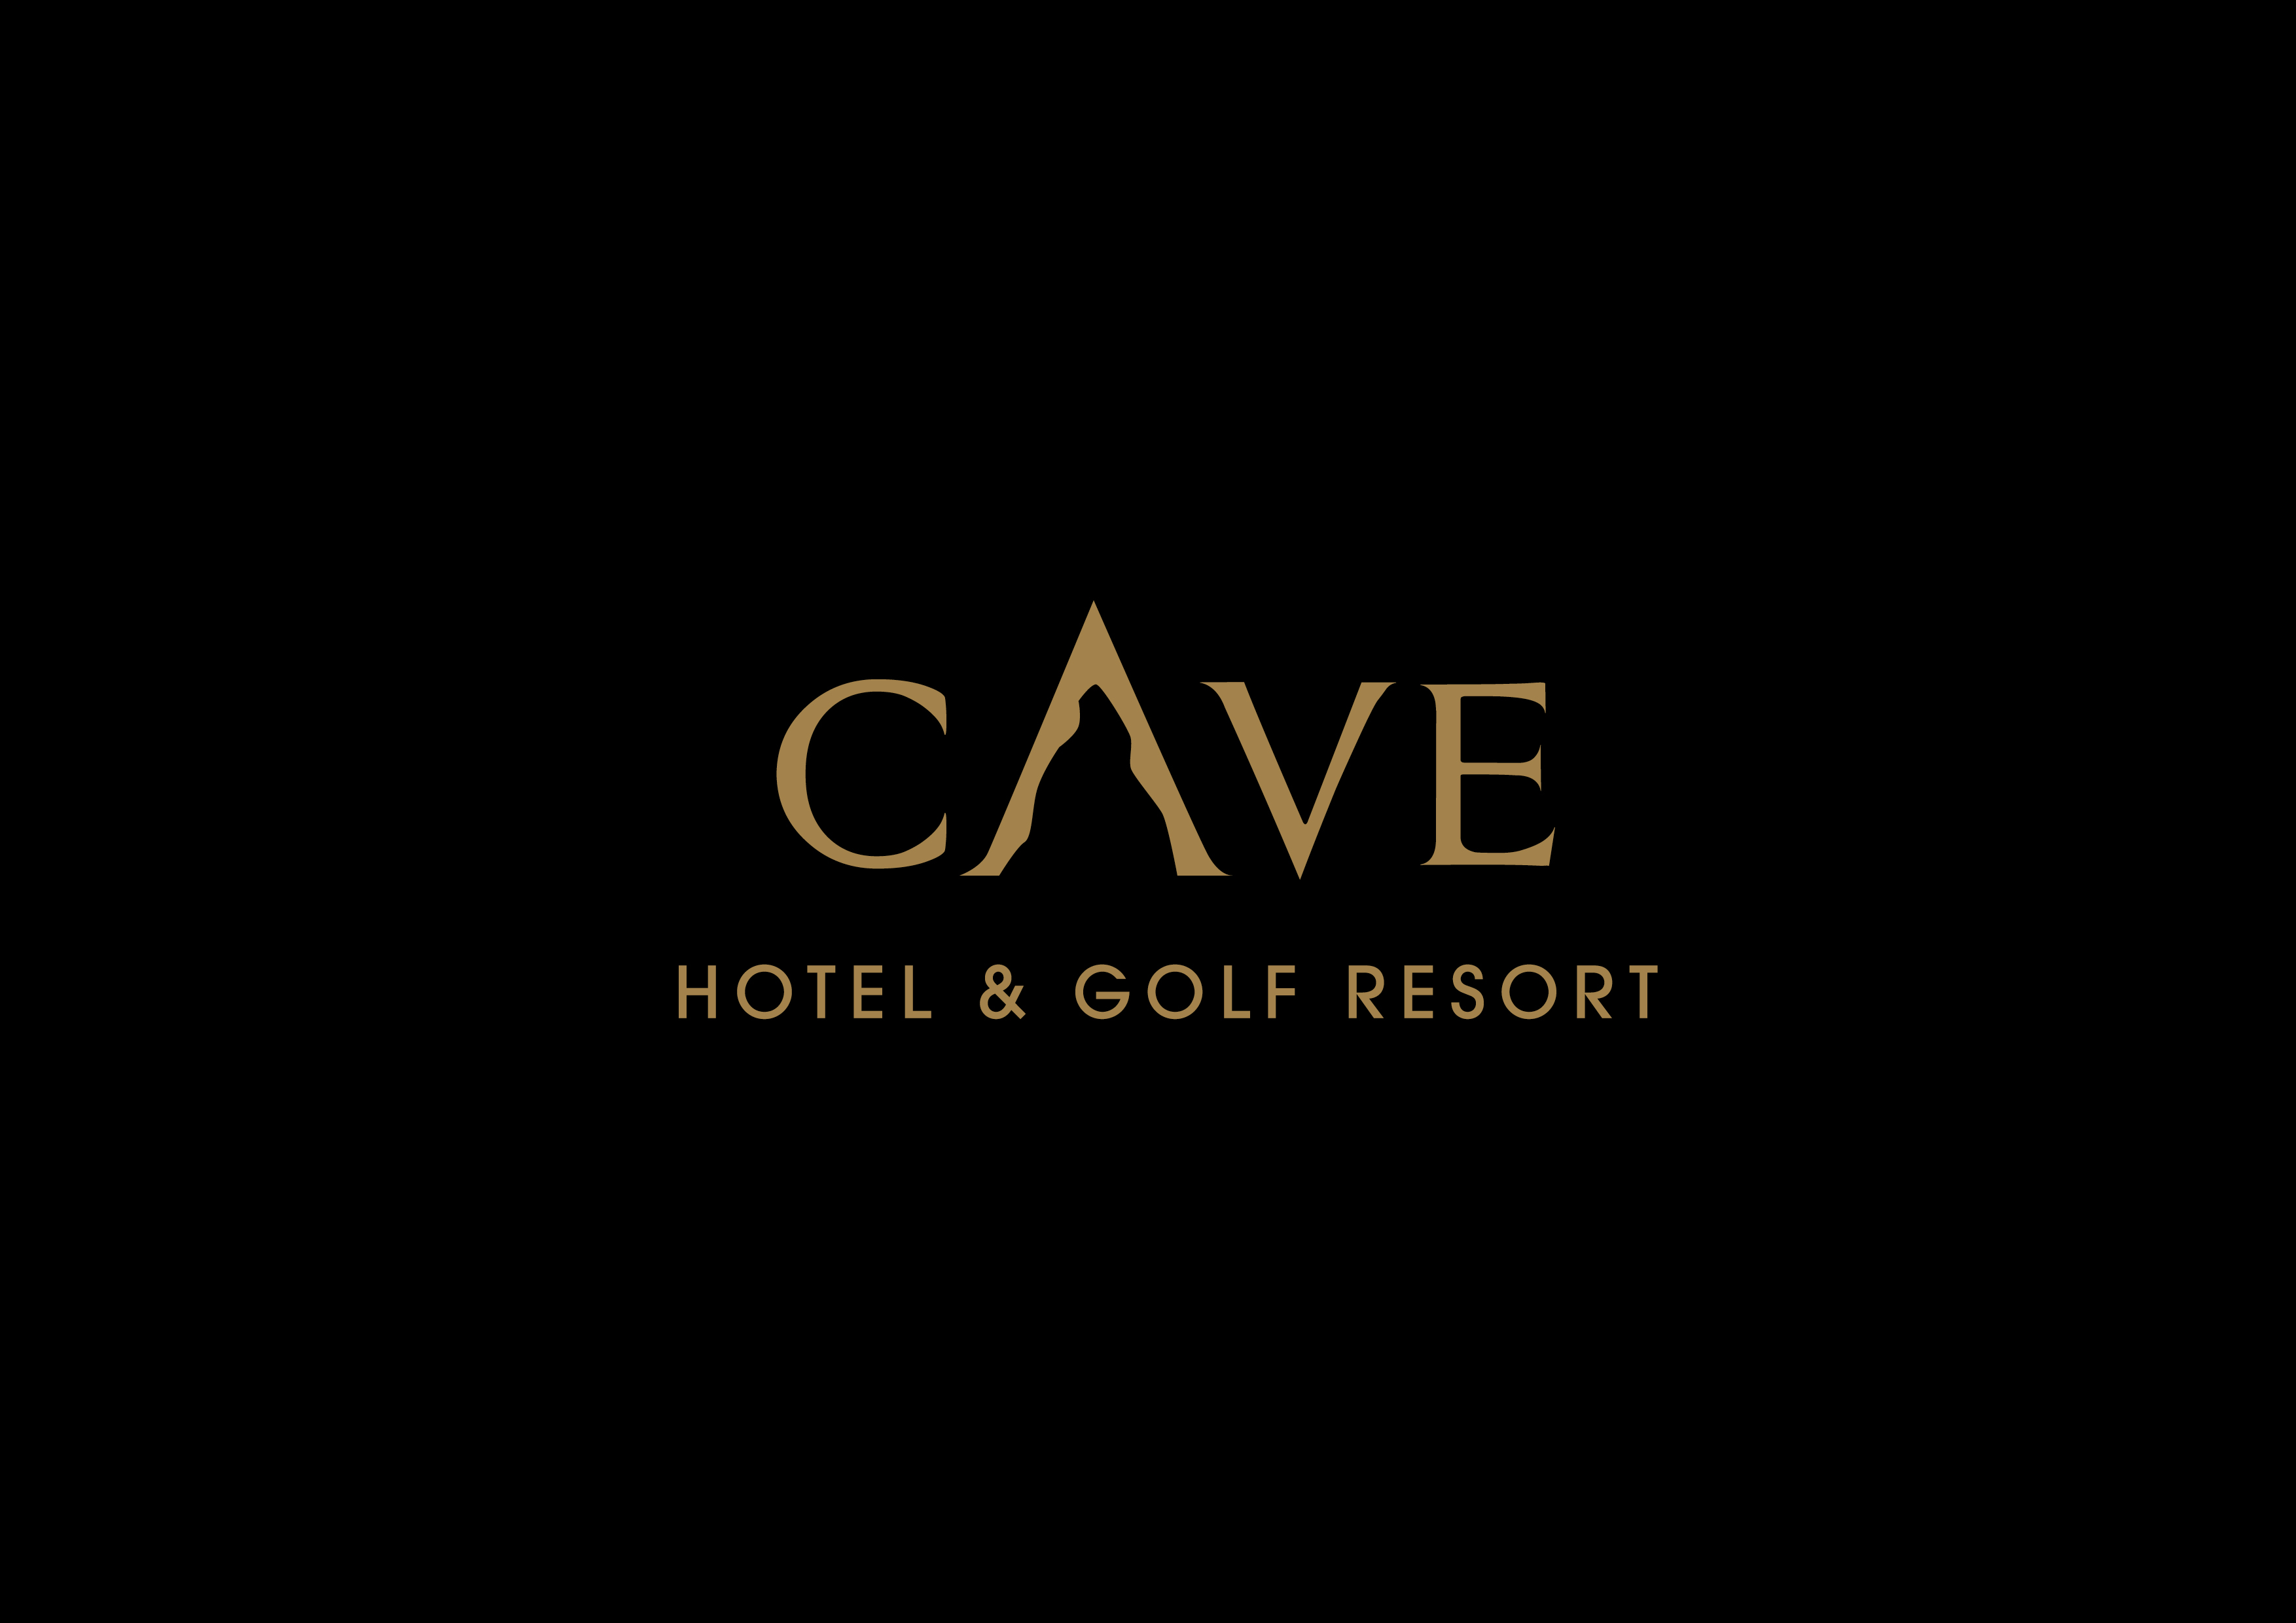 Venues & Events Expo SE Exhibitor Cave H